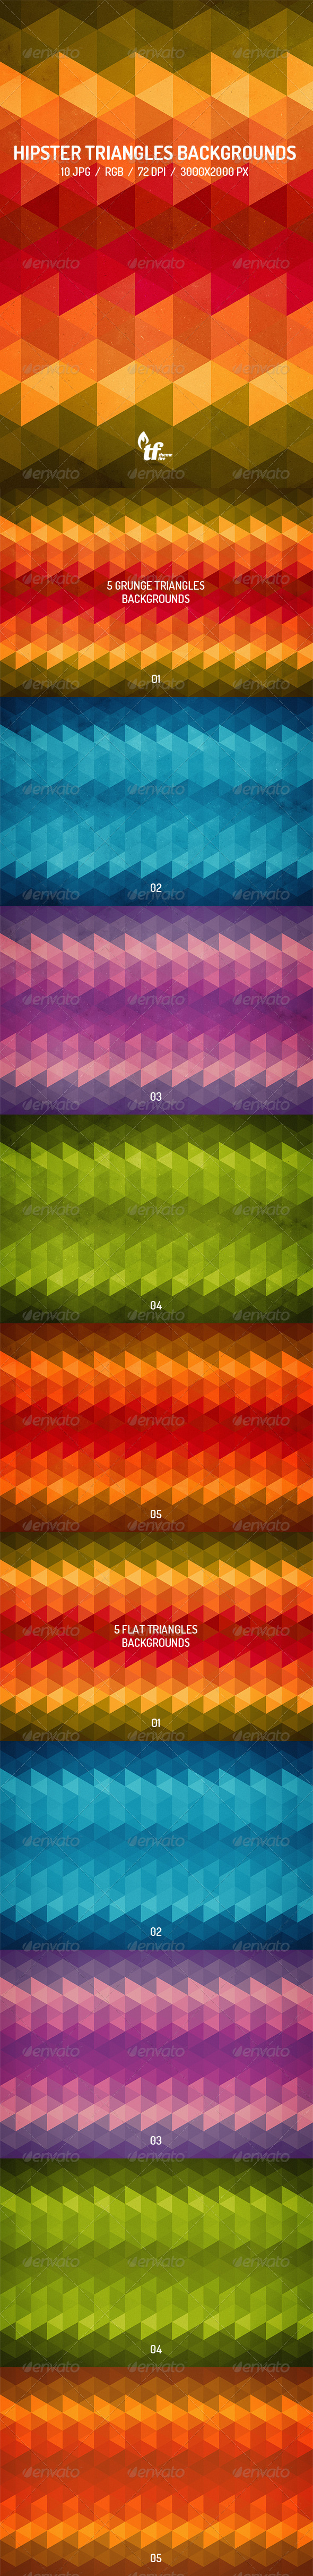 GraphicRiver Hipster Triangles Backgrounds 7796833